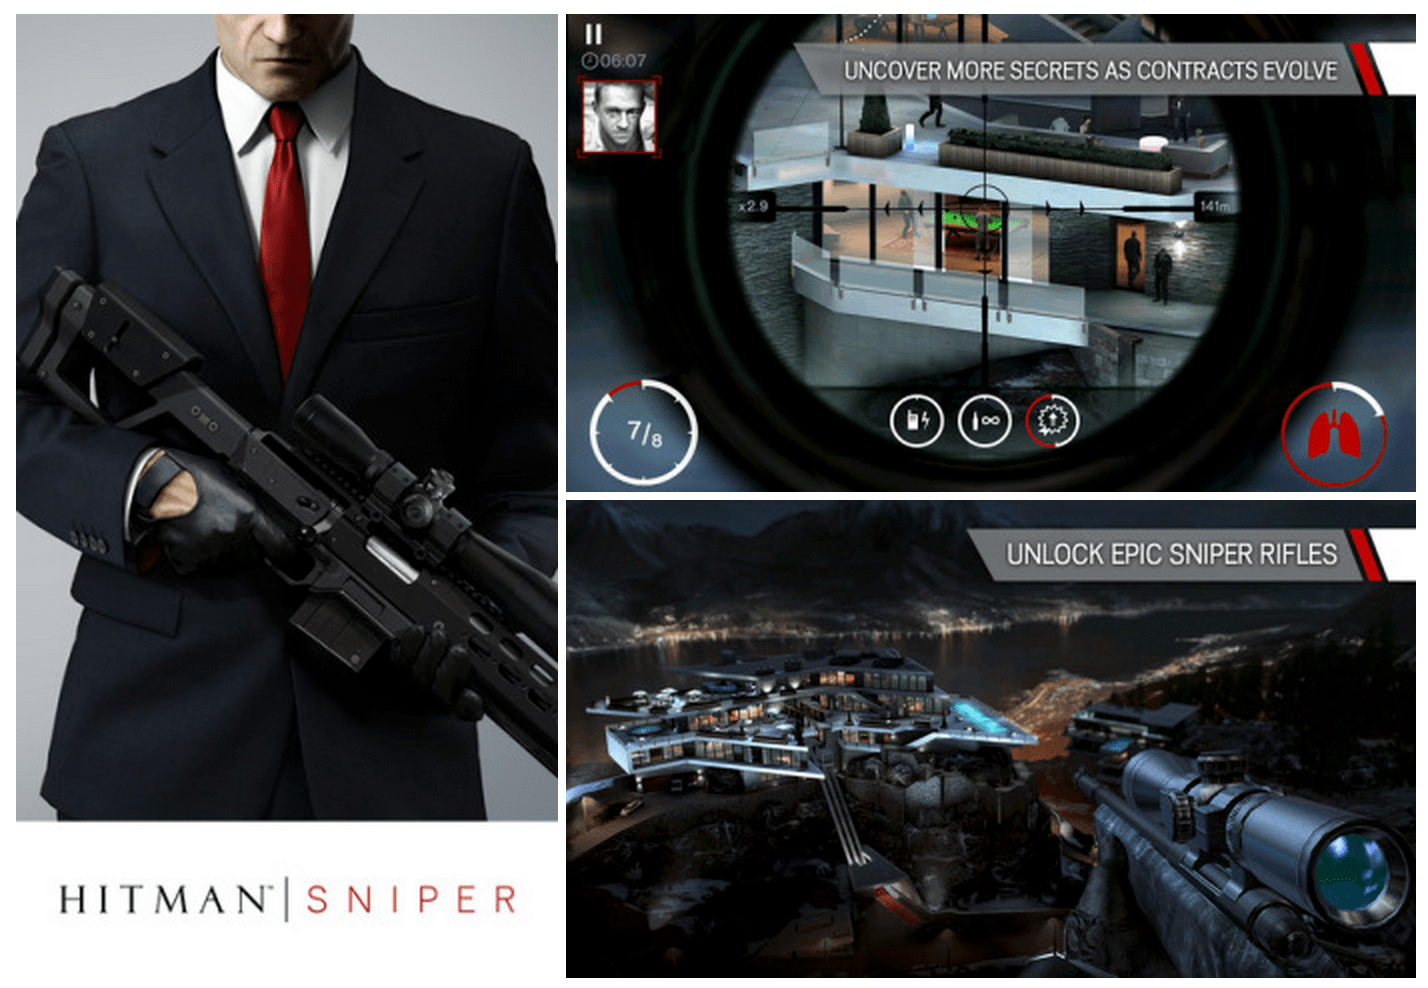 Agent 47 returns to iOS with the new Hitman Sniper game